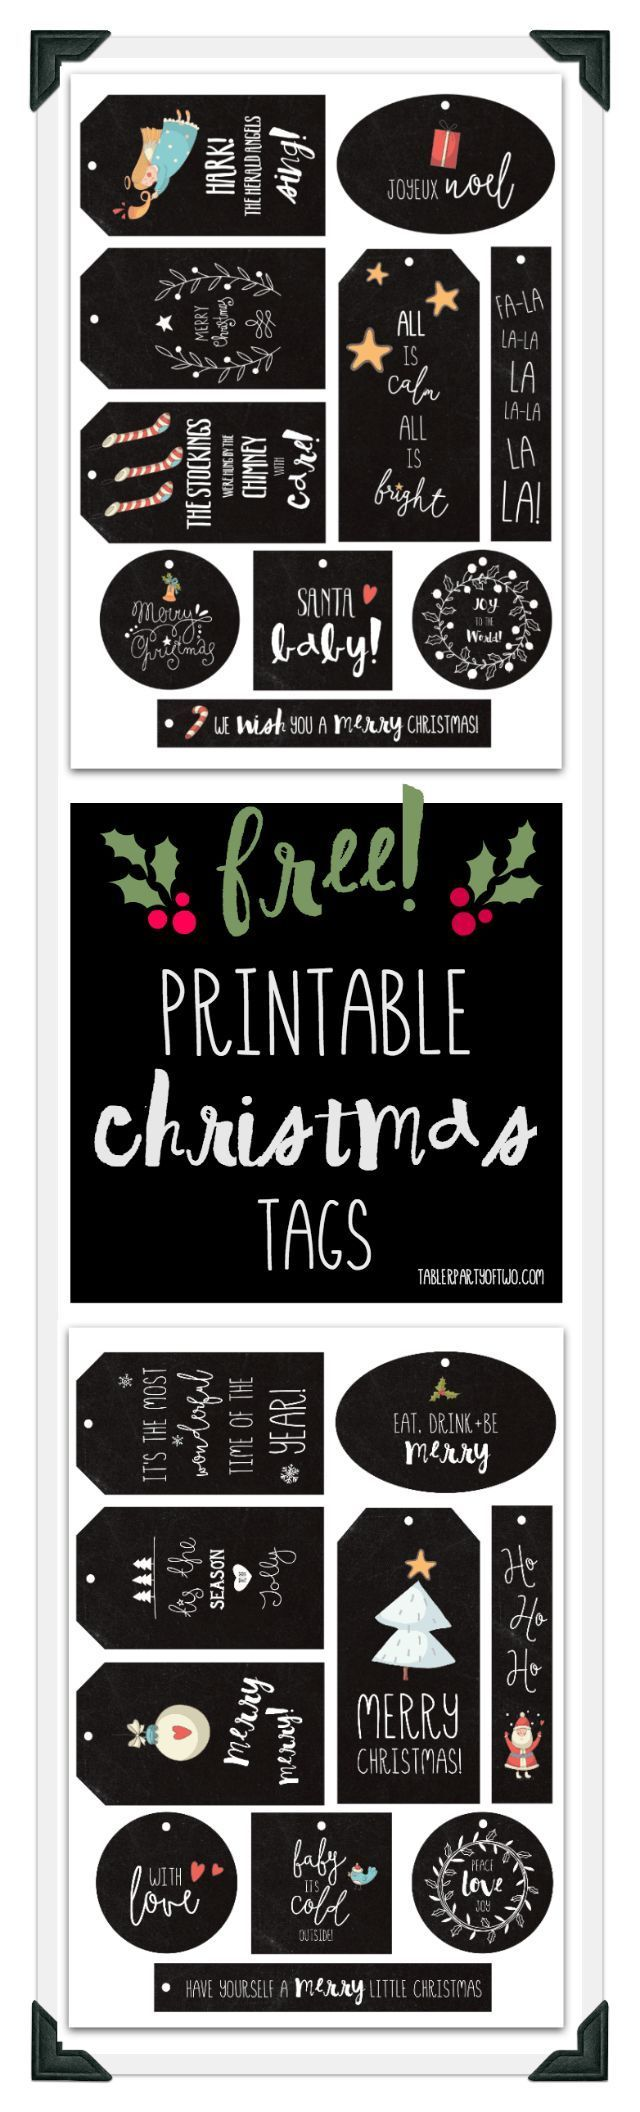 FREE Christmas printable gift tags! Two sets of tags that will look adorable tied to gifts with baker's twine! | Tabler Party Of Two | http://www.TablerPartyofTwo.com